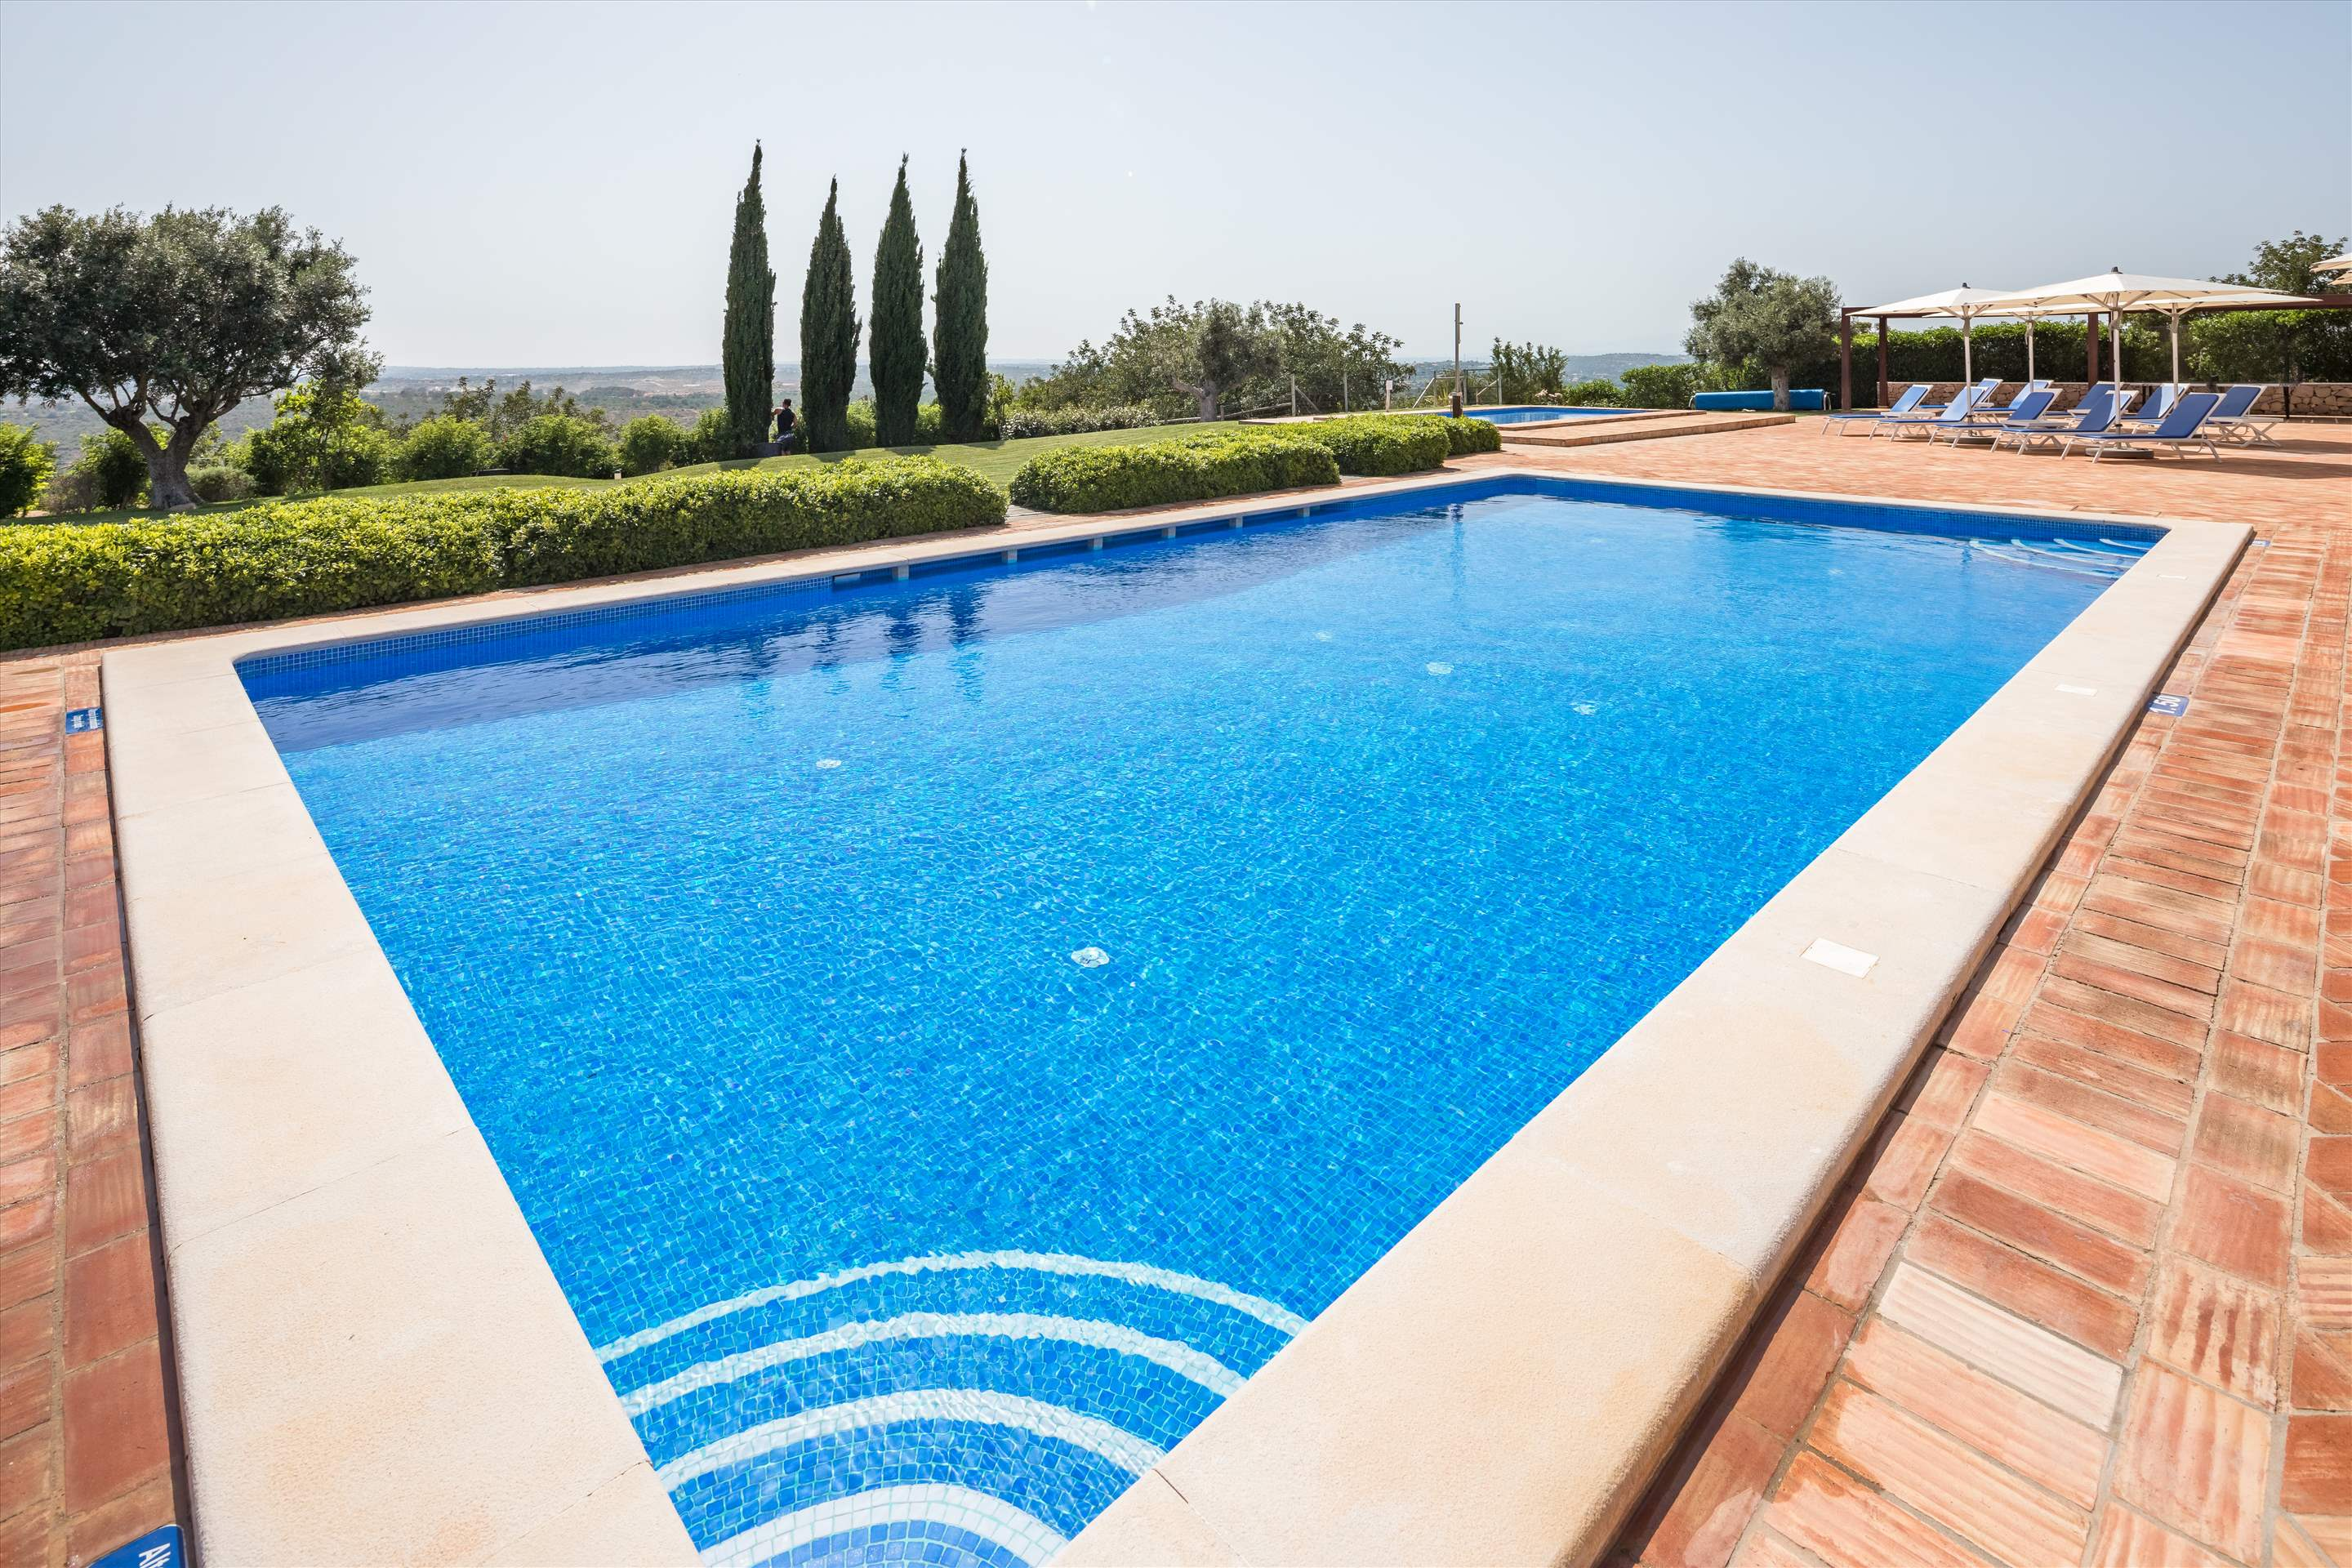 Casa Cahombo, 5 bedroom rate for 7-10 persons, 5 bedroom villa in Vilamoura Area, Algarve Photo #2